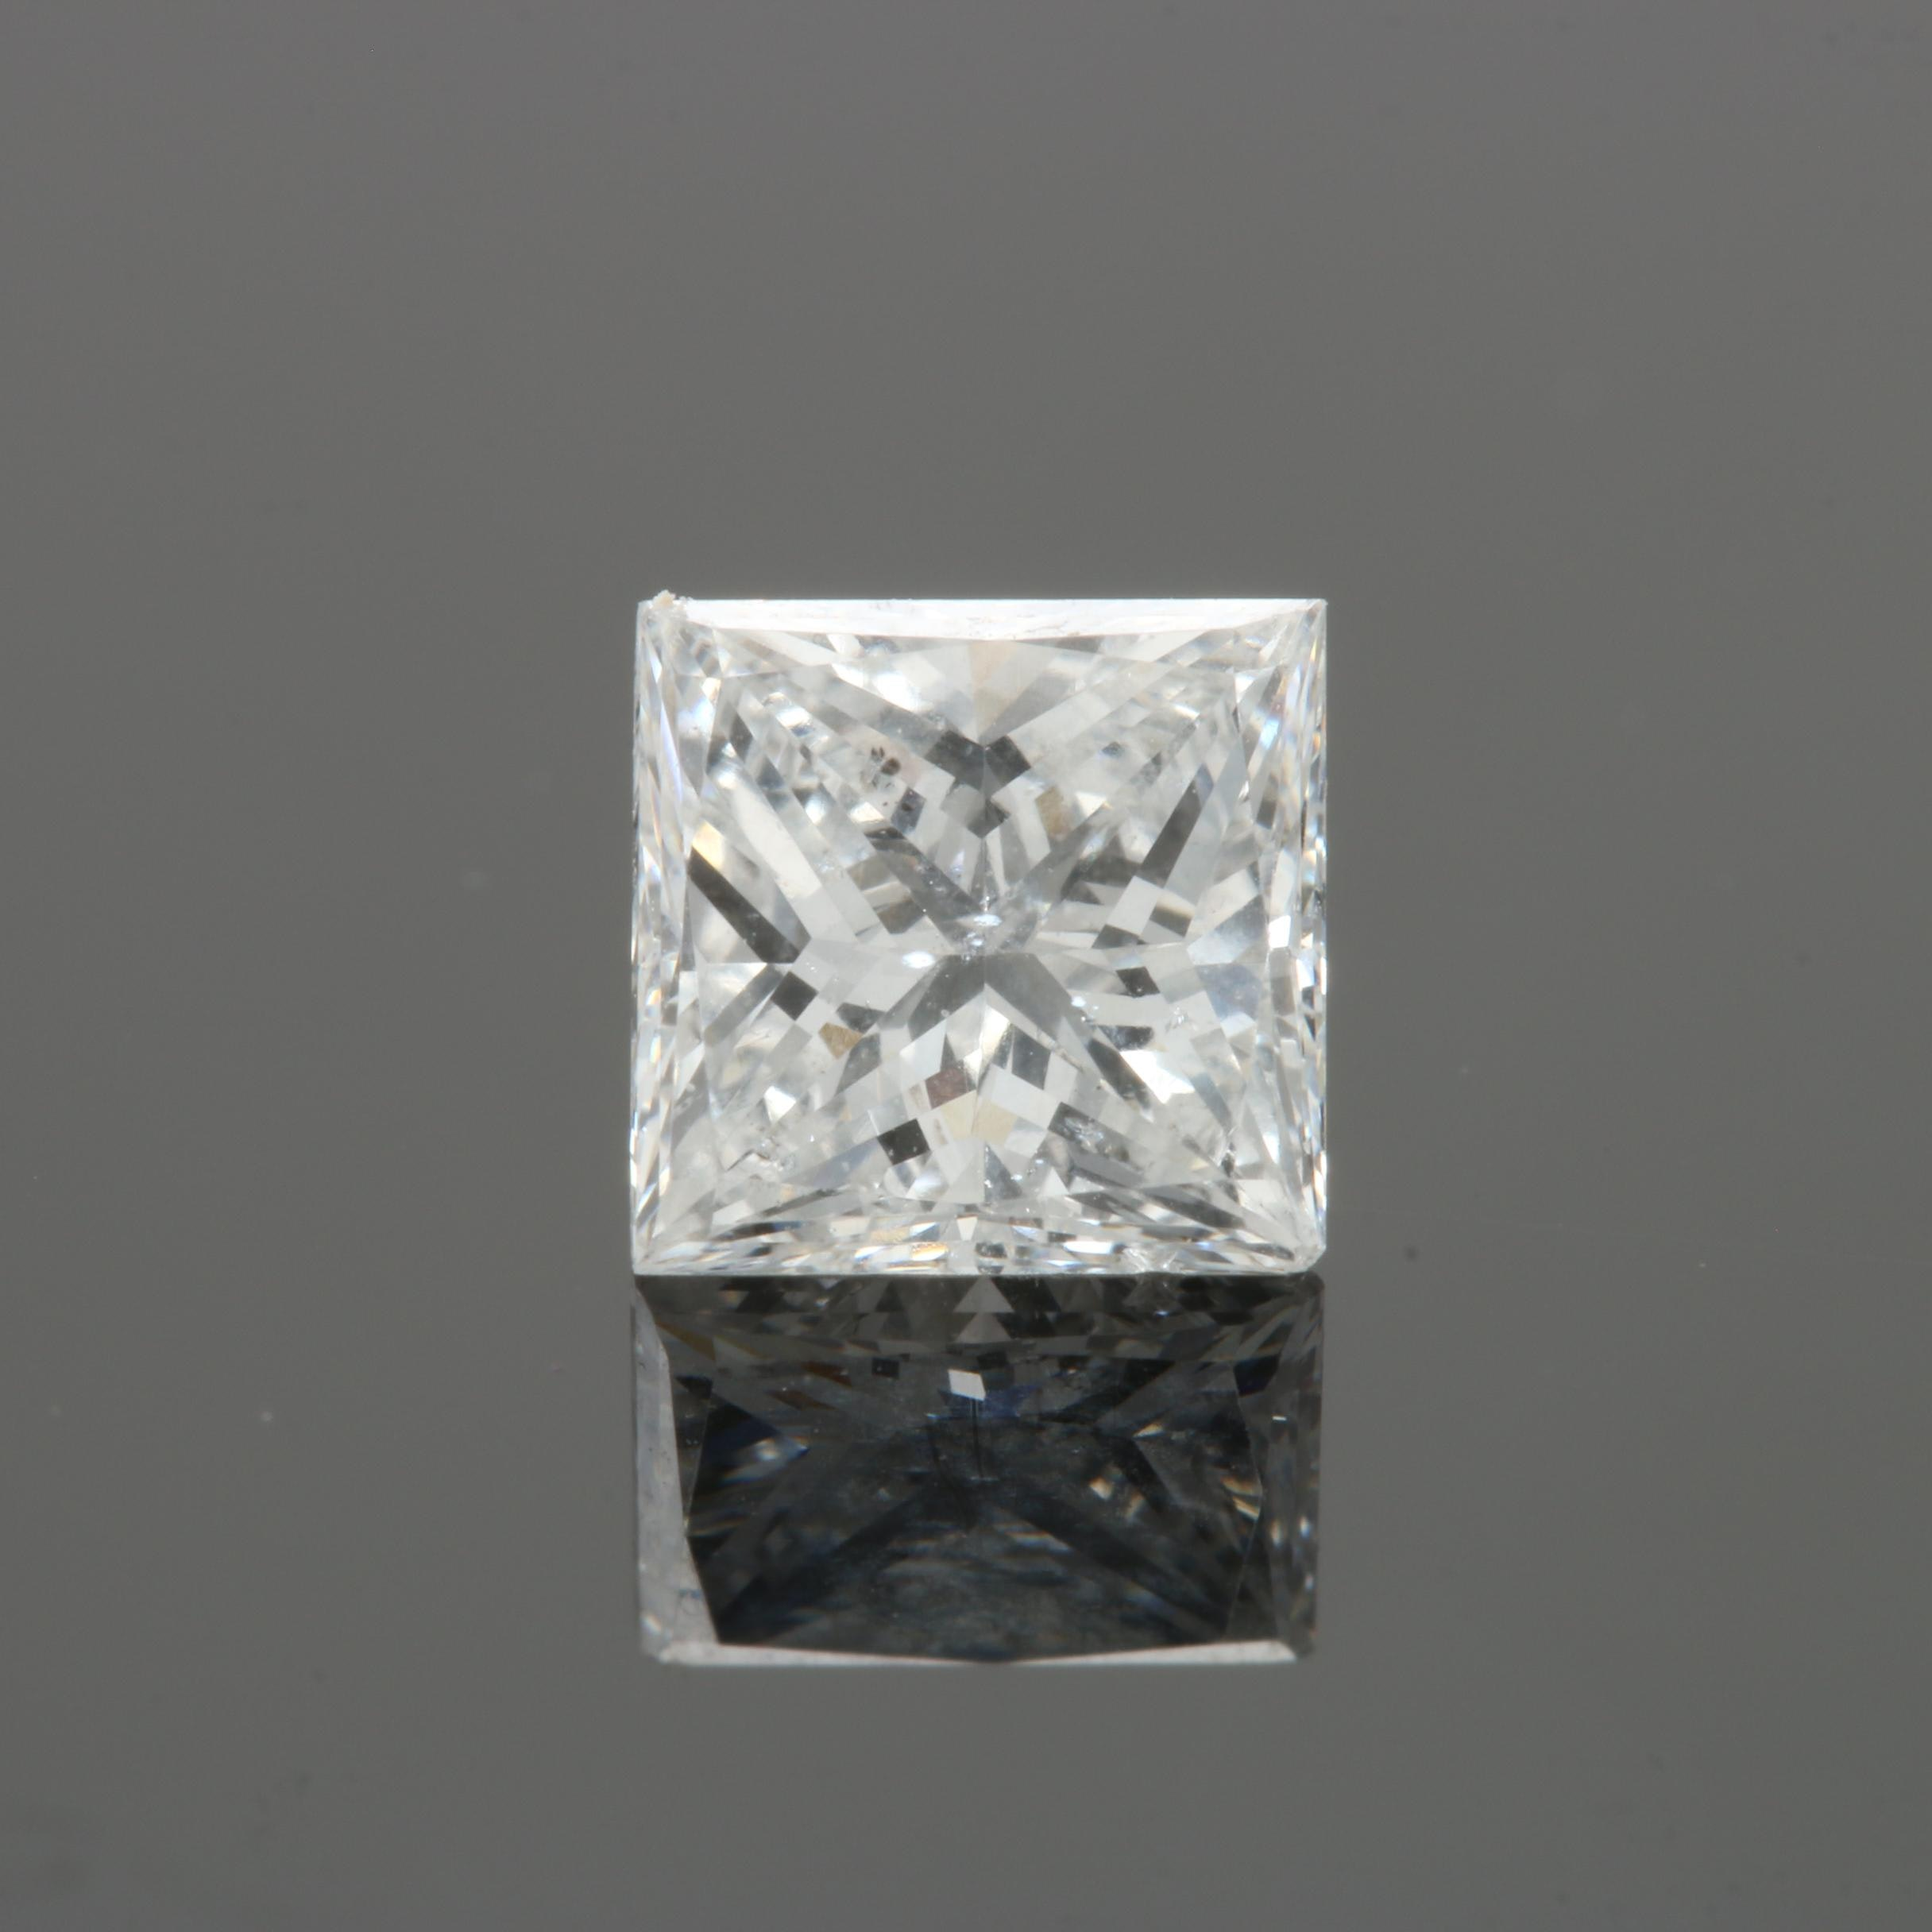 Loose 0.76 CT Diamond Gemstone